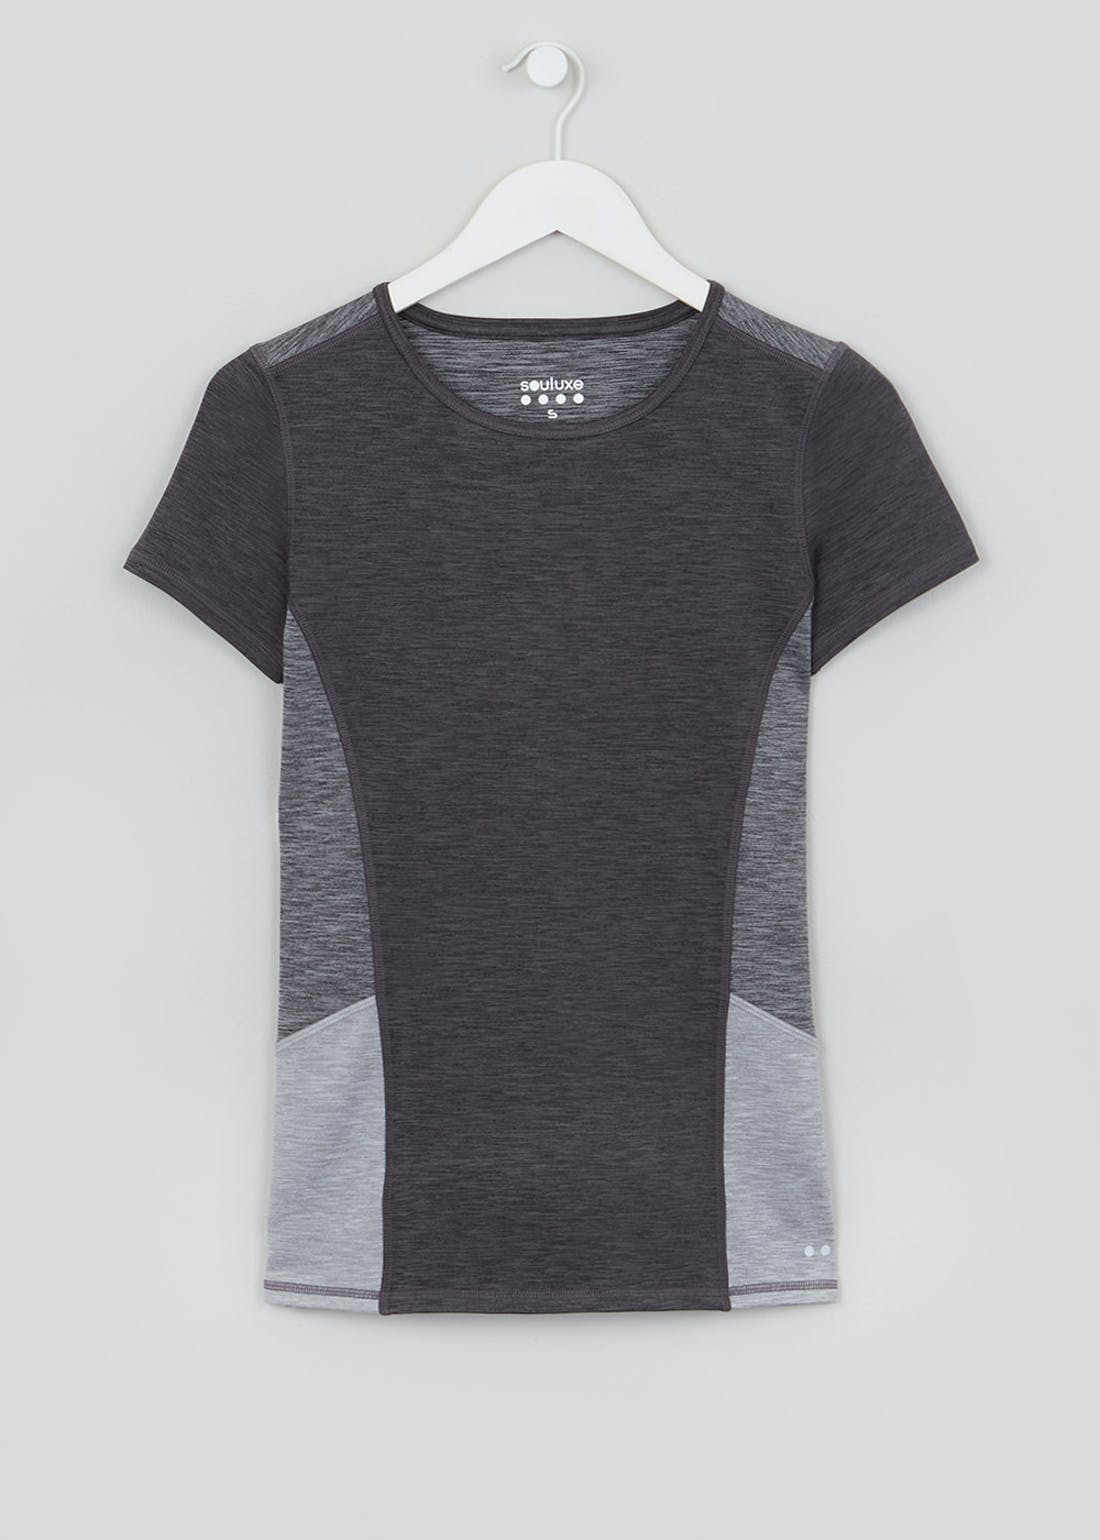 Souluxe Grey Panelled Gym T-Shirt